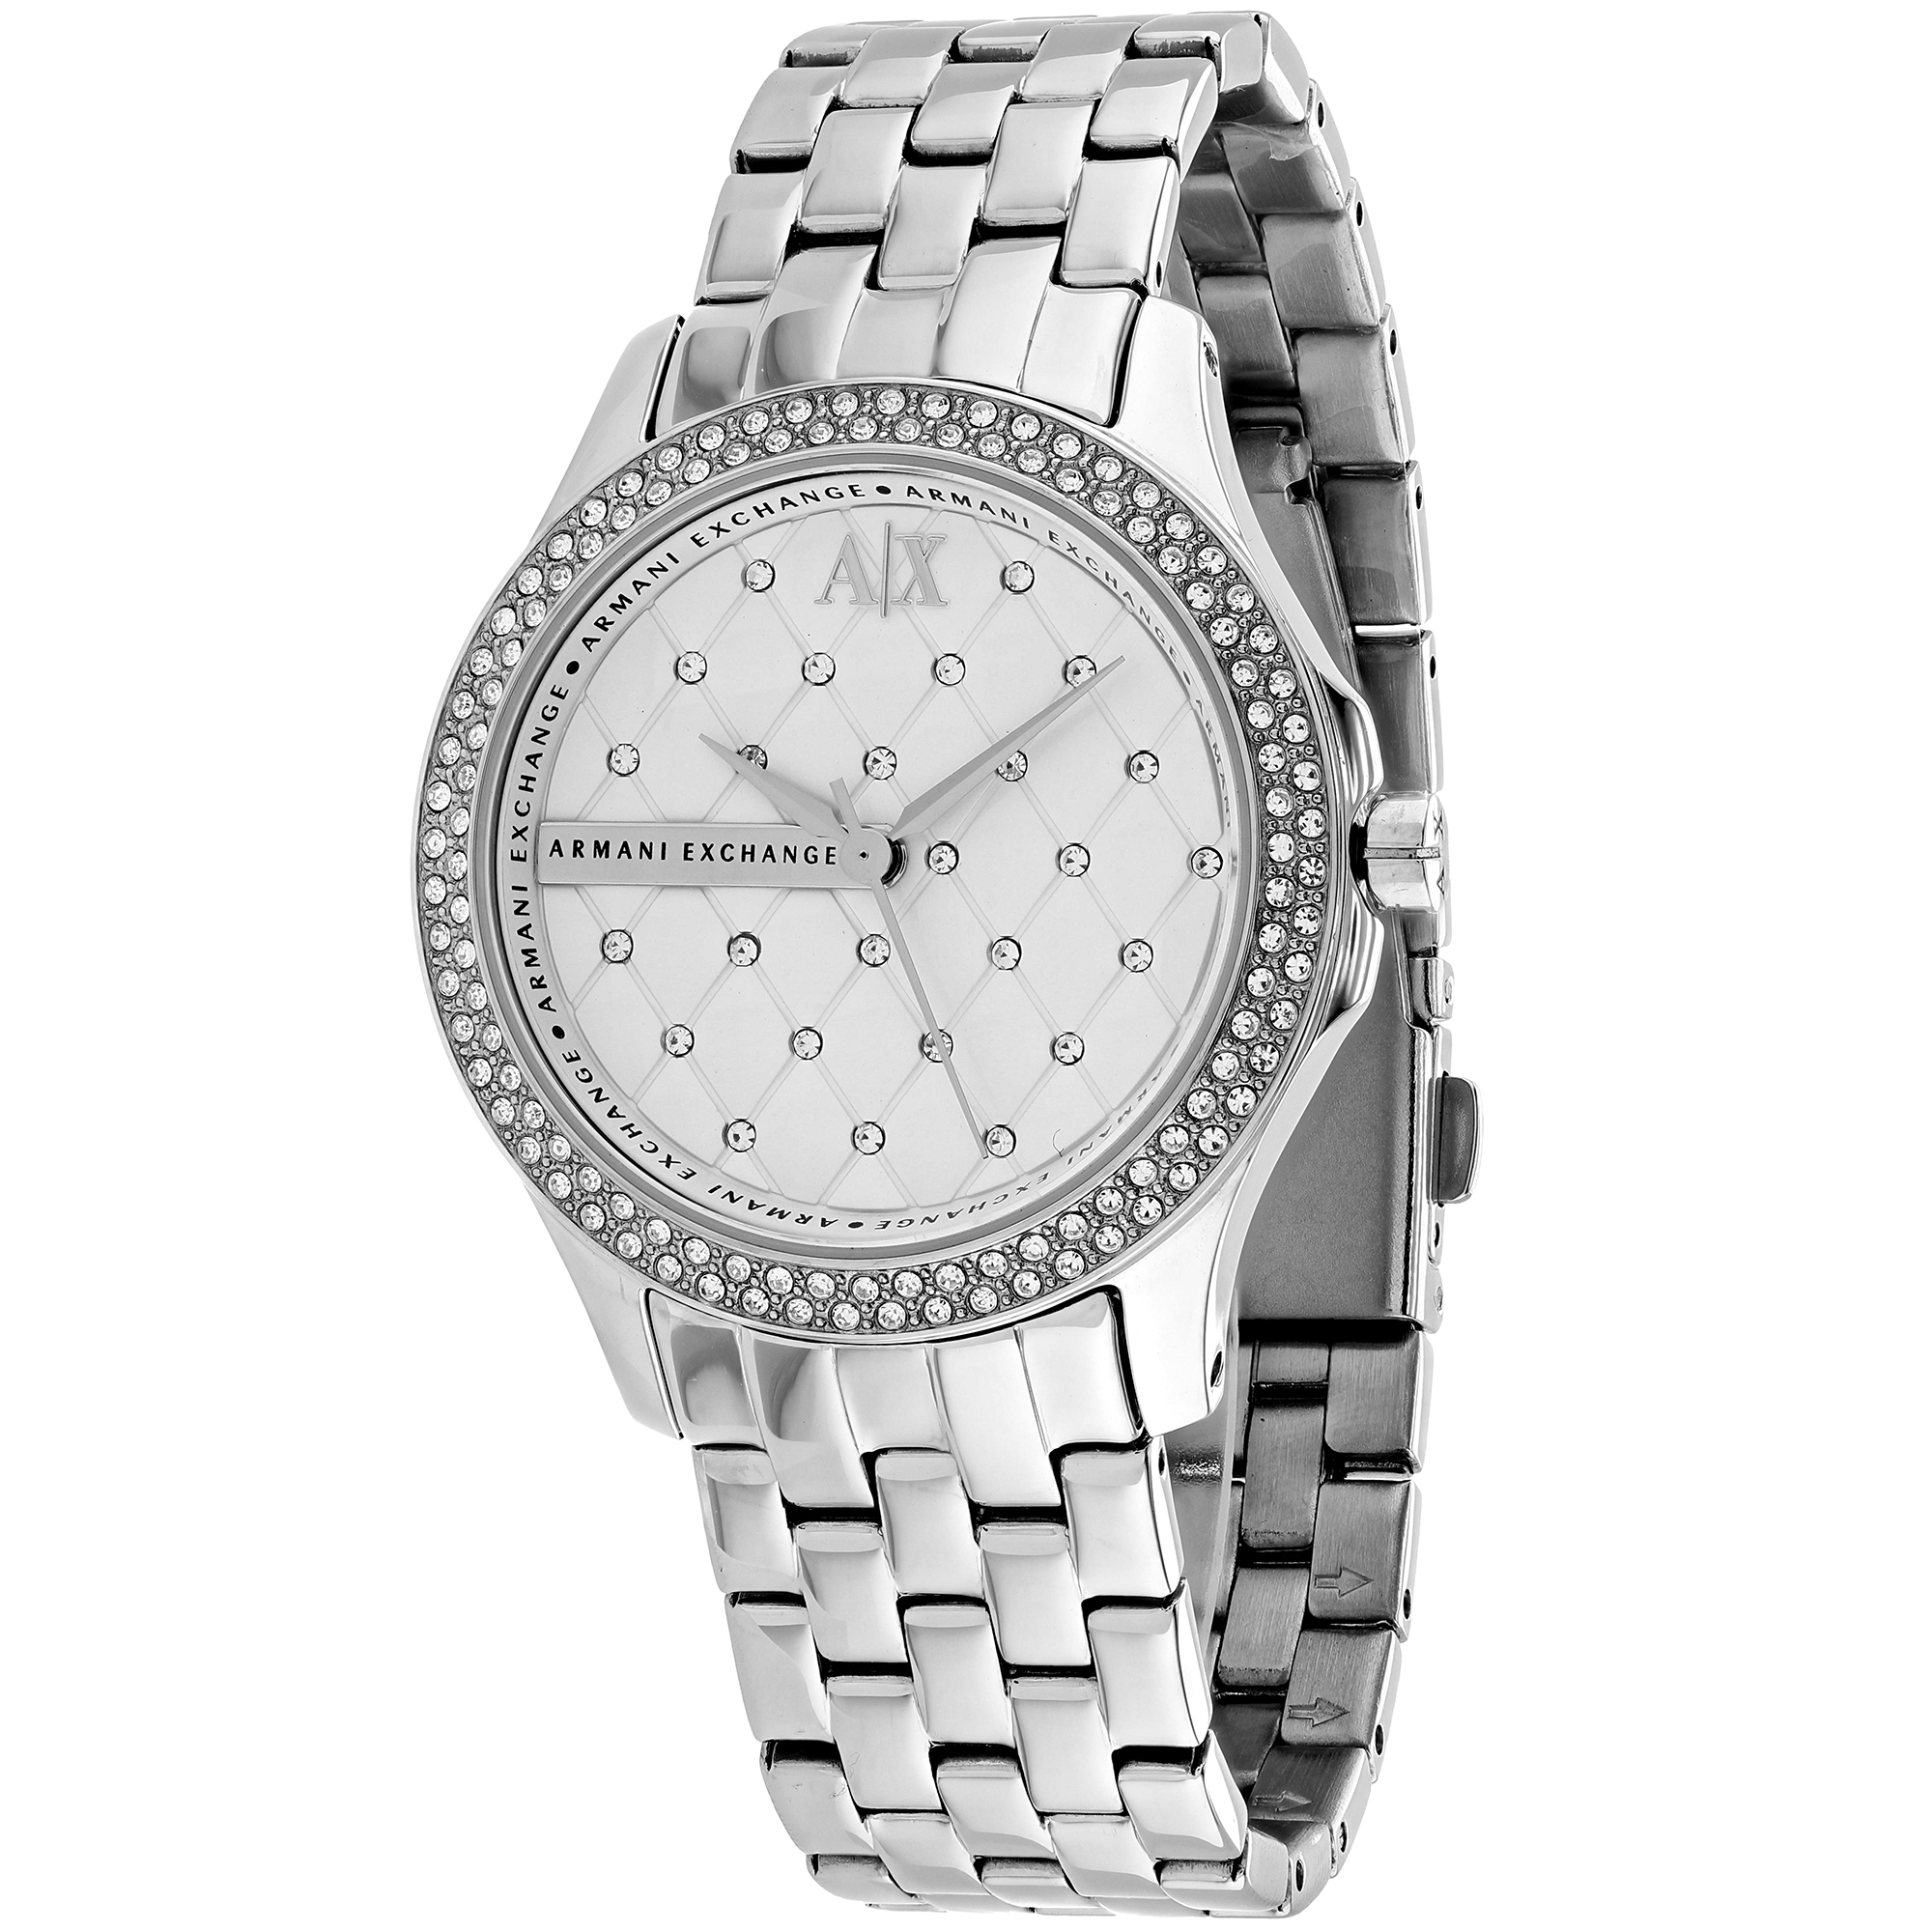 Armani Exchange Classic Silver Women's Watch AX5215